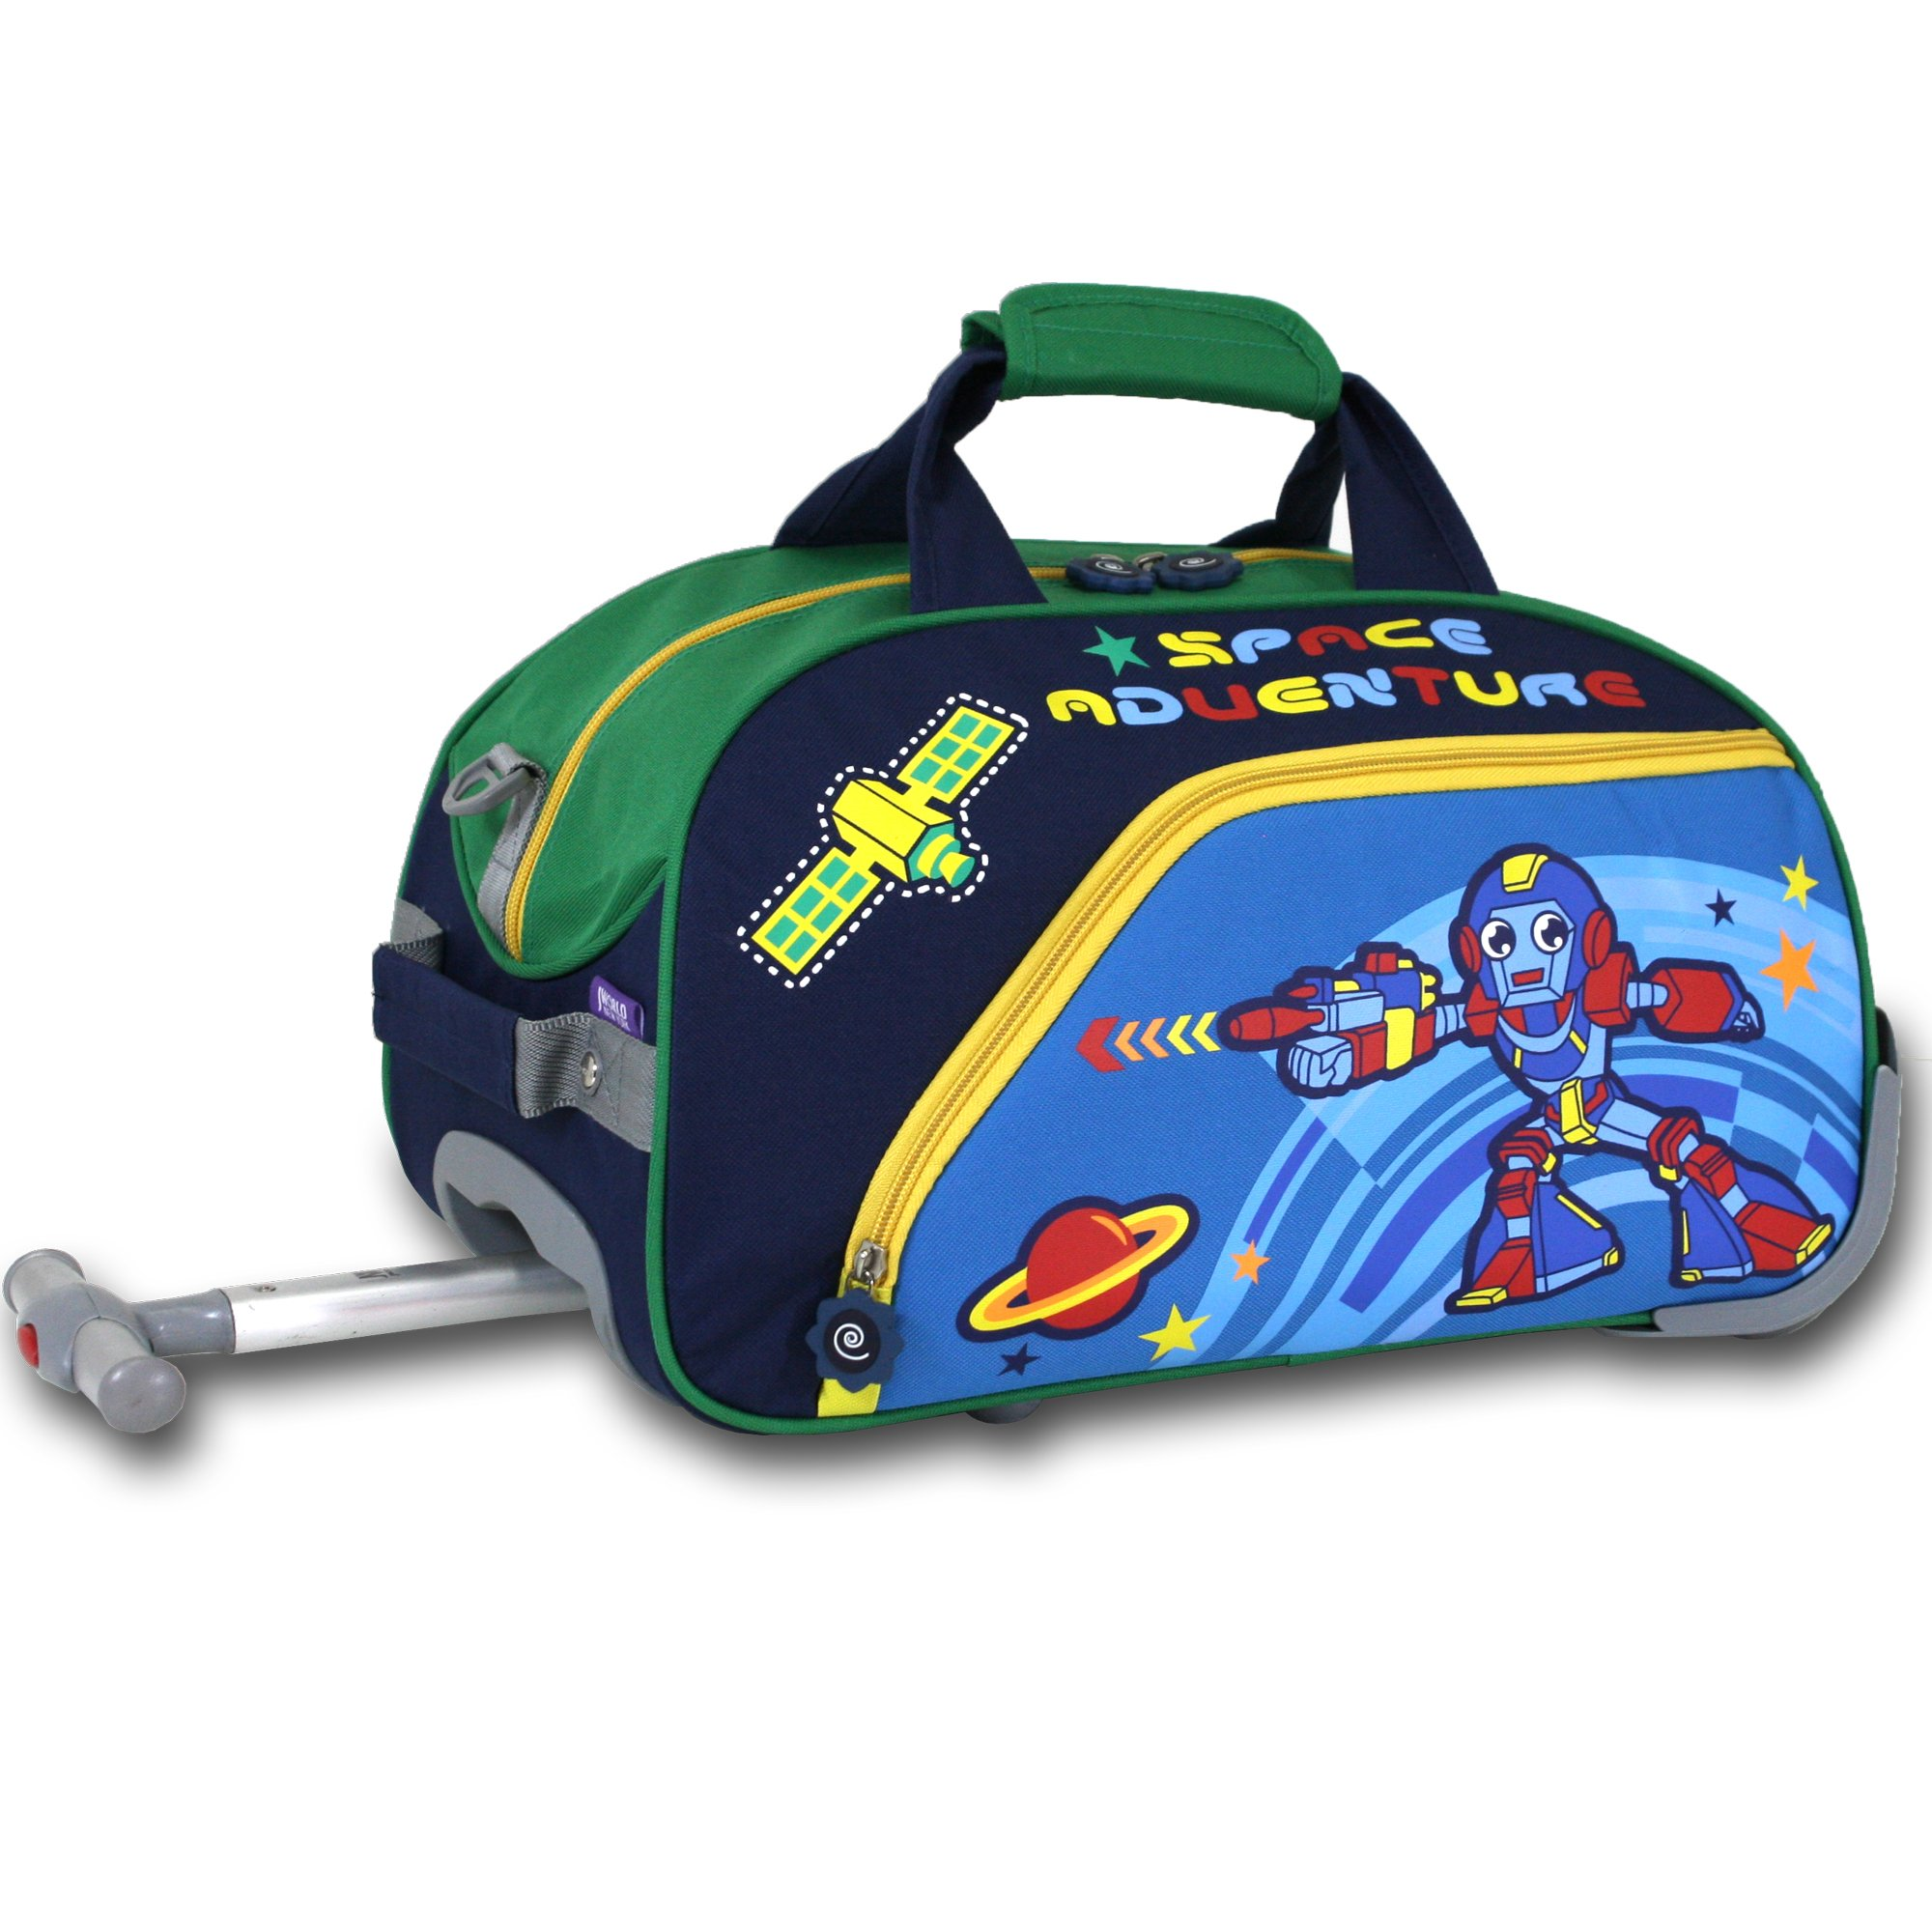 J World New York Robot Kids' Rolling Duffel